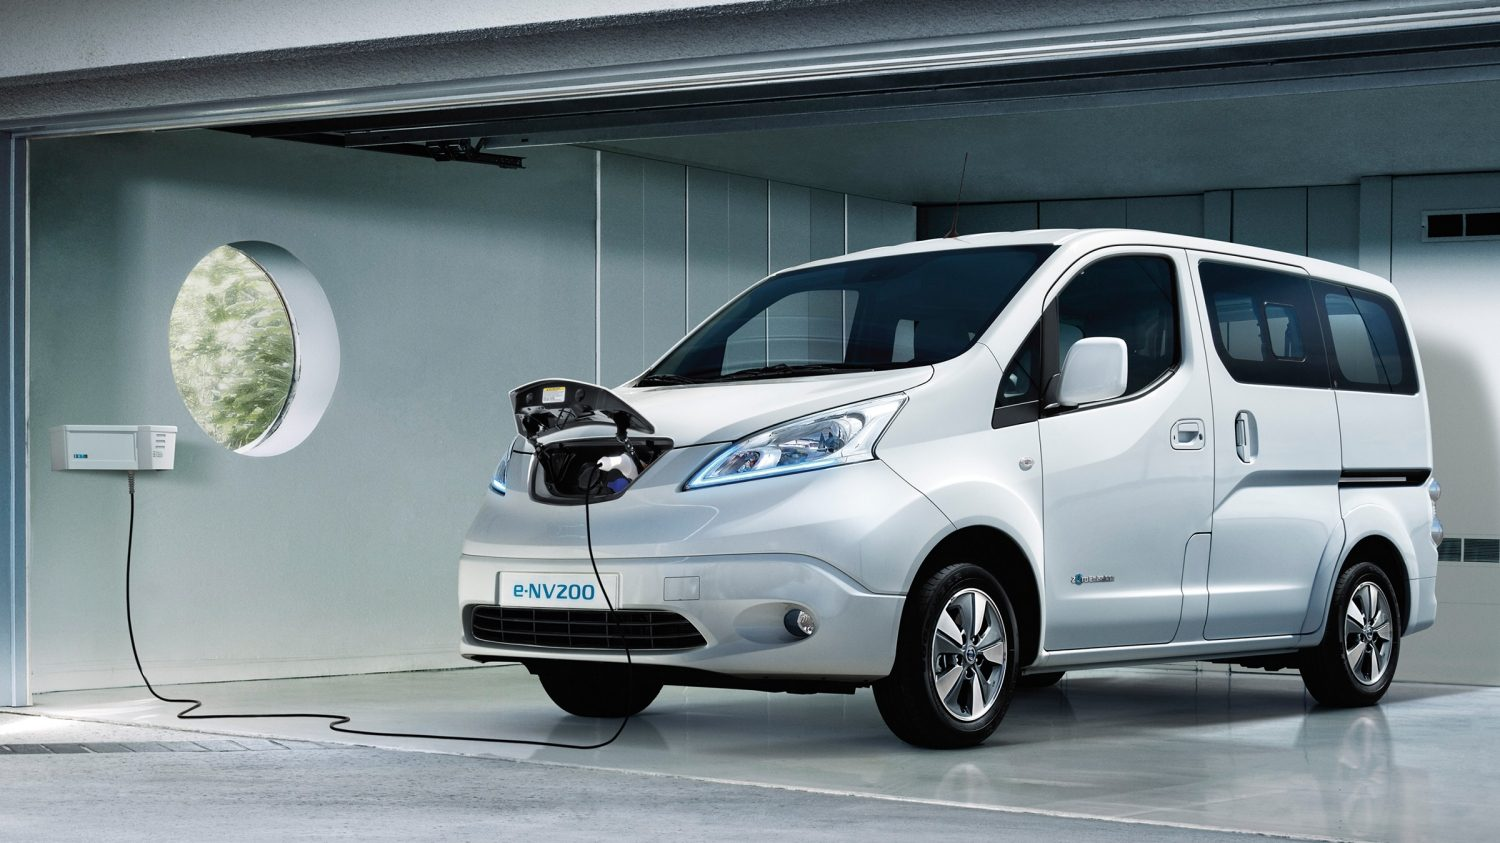 New E Nv200 Evalia Electric Family Car Electric 7 Seater Vehicle